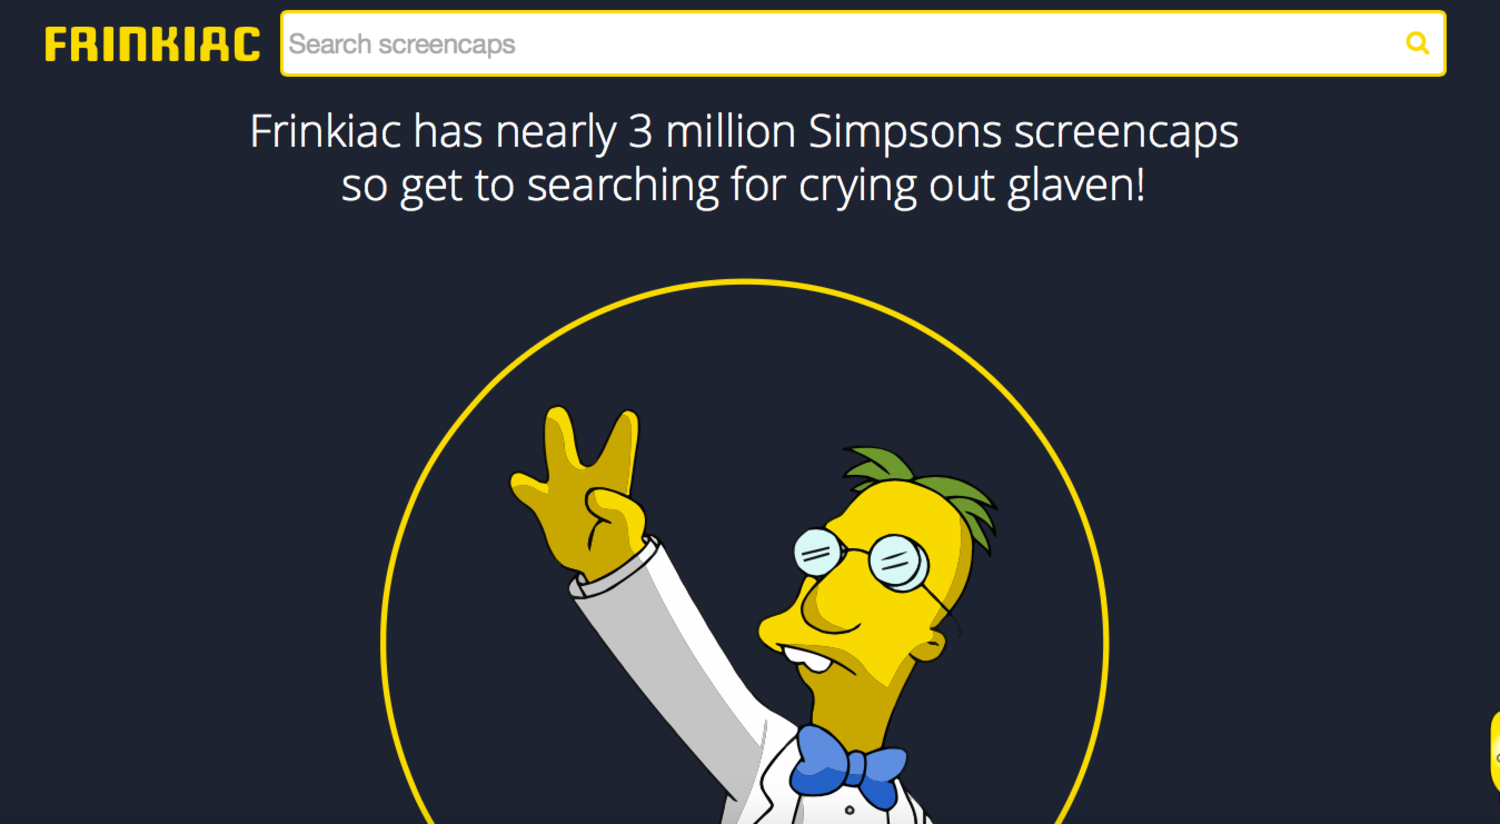 Need the Perfect Meme? The Simpsons Can Help